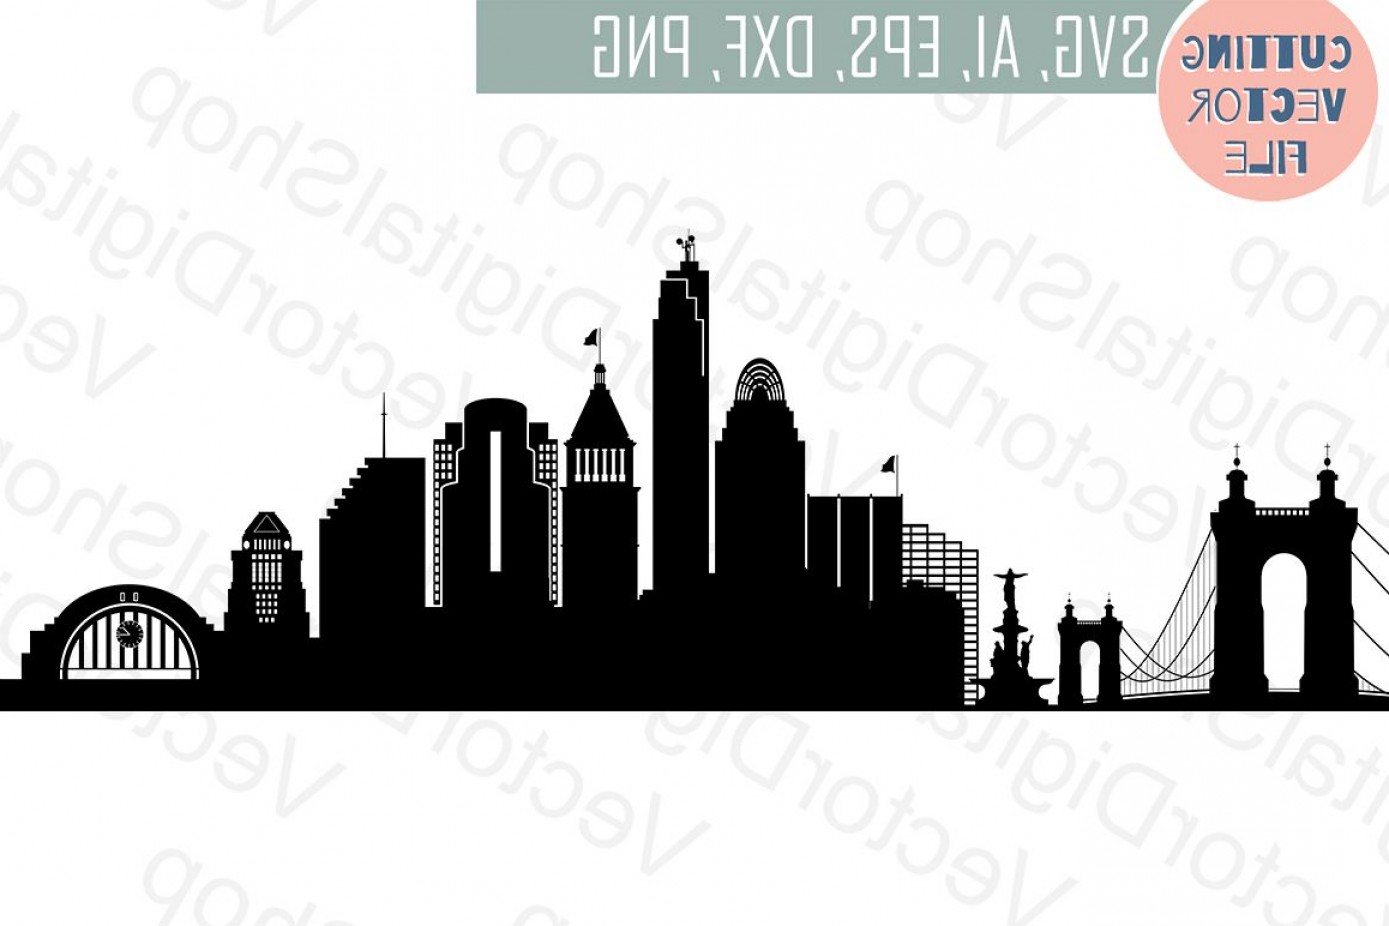 City Vector: Cincinnati Svg Ohio City Vector Skyline Silhouette Usa City Svg Jpg Png Dwg Cdr Eps Ai